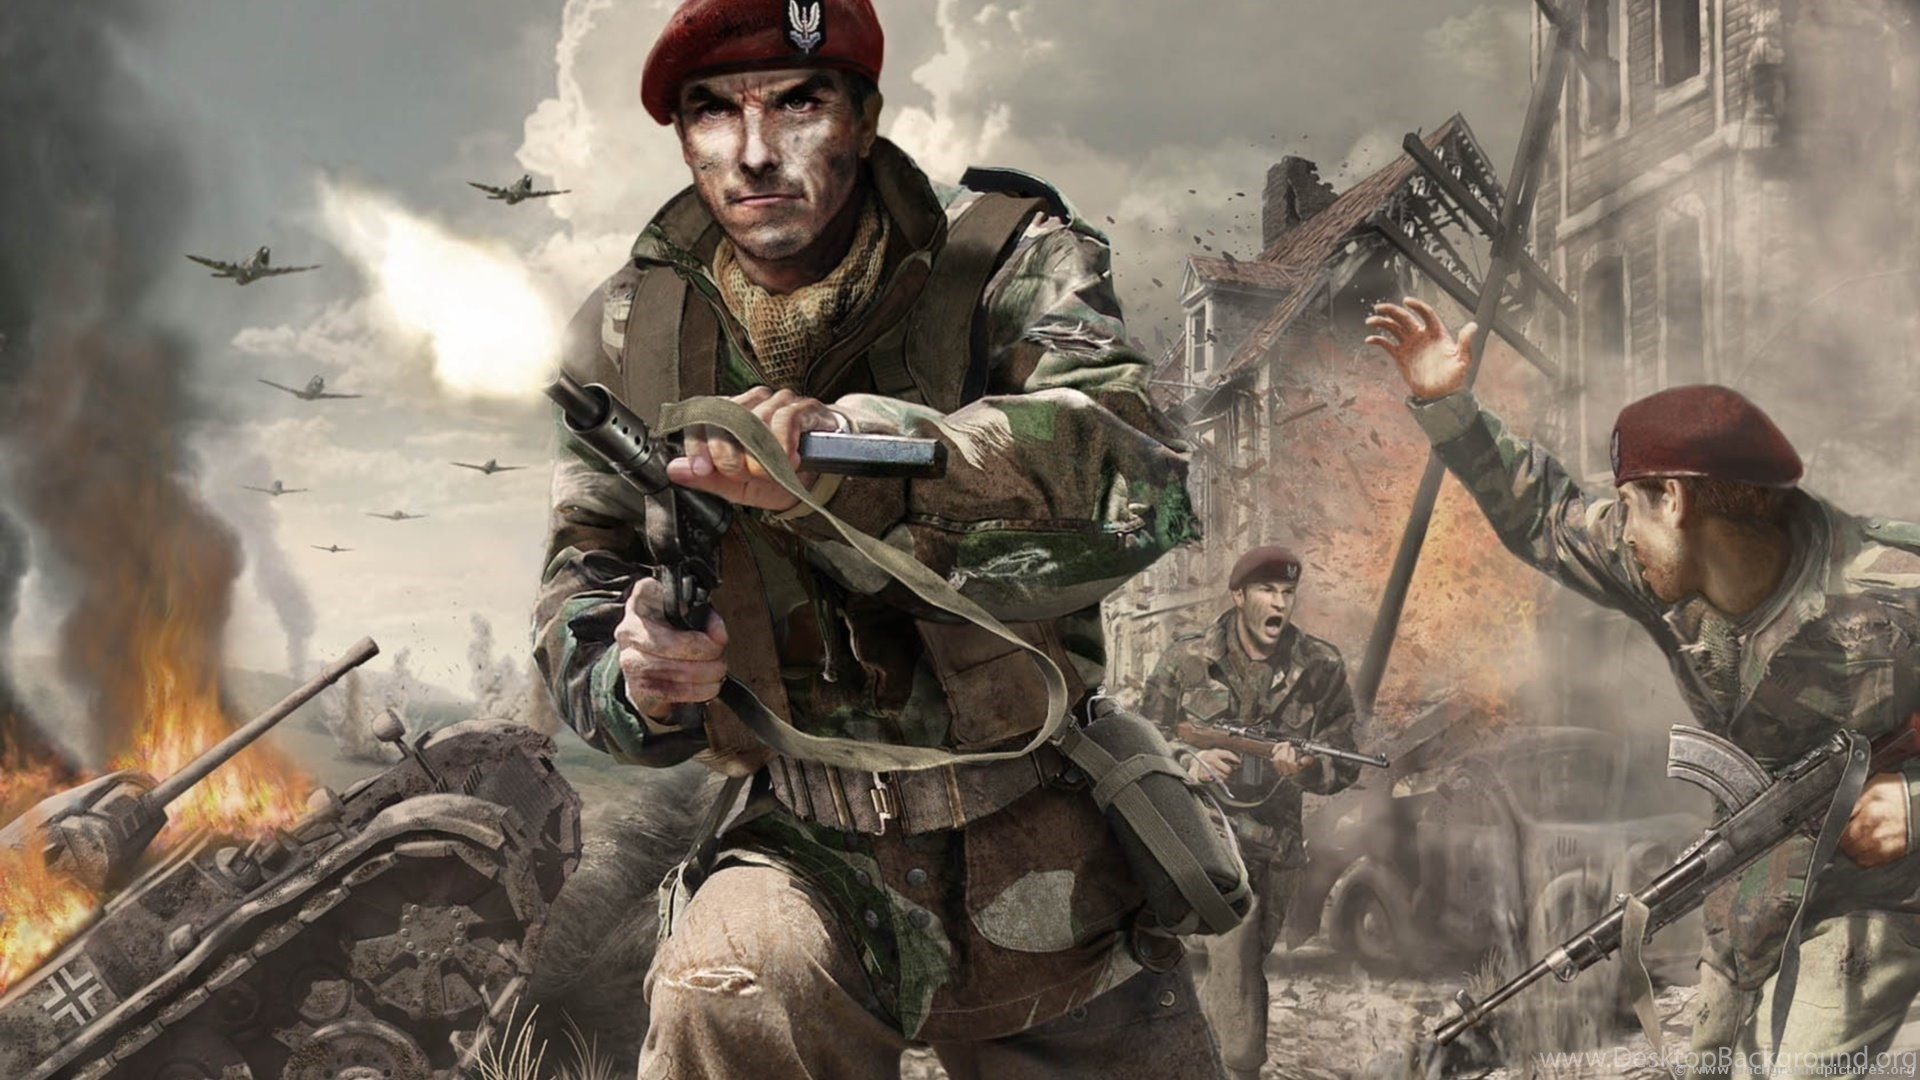 Call Of Duty Live Wallpapers For Windows 7 Game Wallpapers